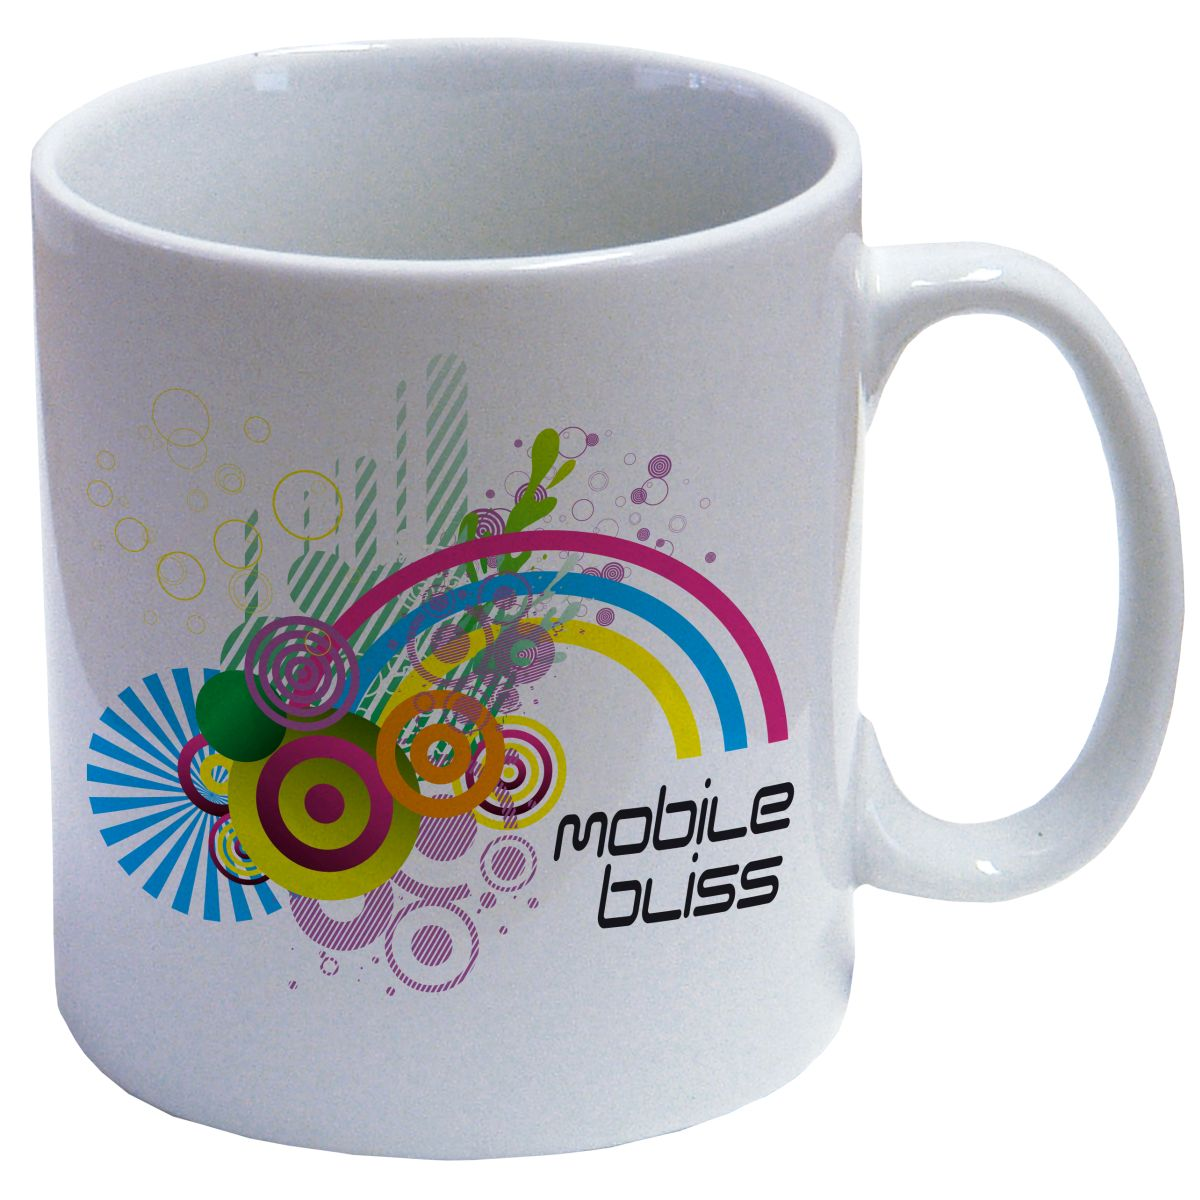 Cambridge Dye Sublimation Mug Uk Corporate Gifts